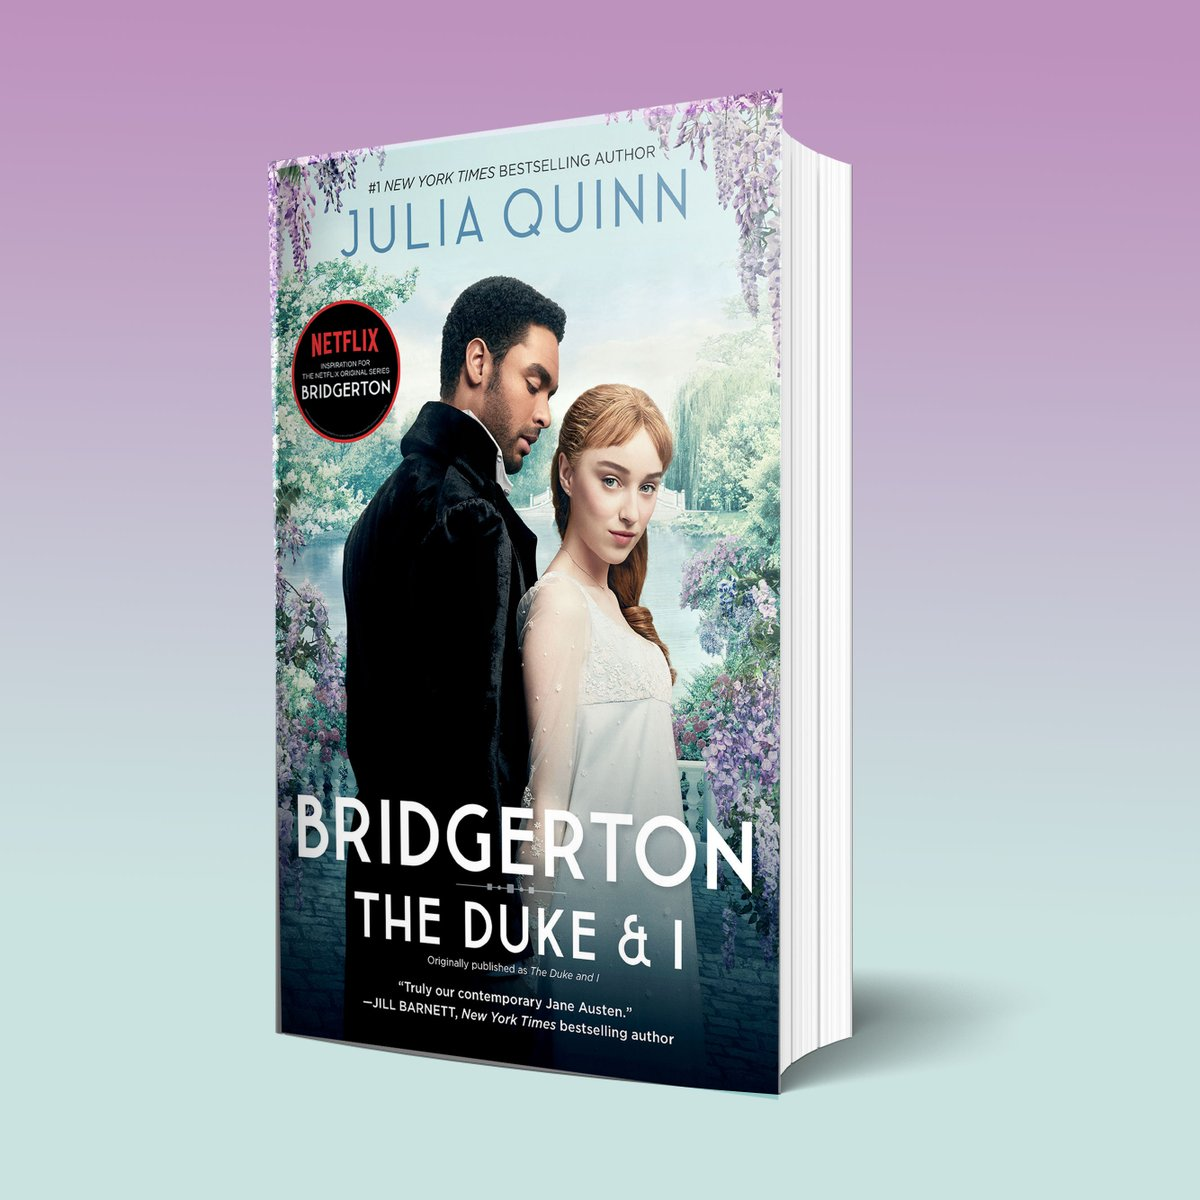 Turns out, Bridgerton fans can't get enough of this incredible world...  The Duke and I has reached #1 on the New York Times bestseller list while The Viscount Who Loved Me and Romancing Mr. Bridgerton are also in the Top 10 — the first time any of the books have made the list!